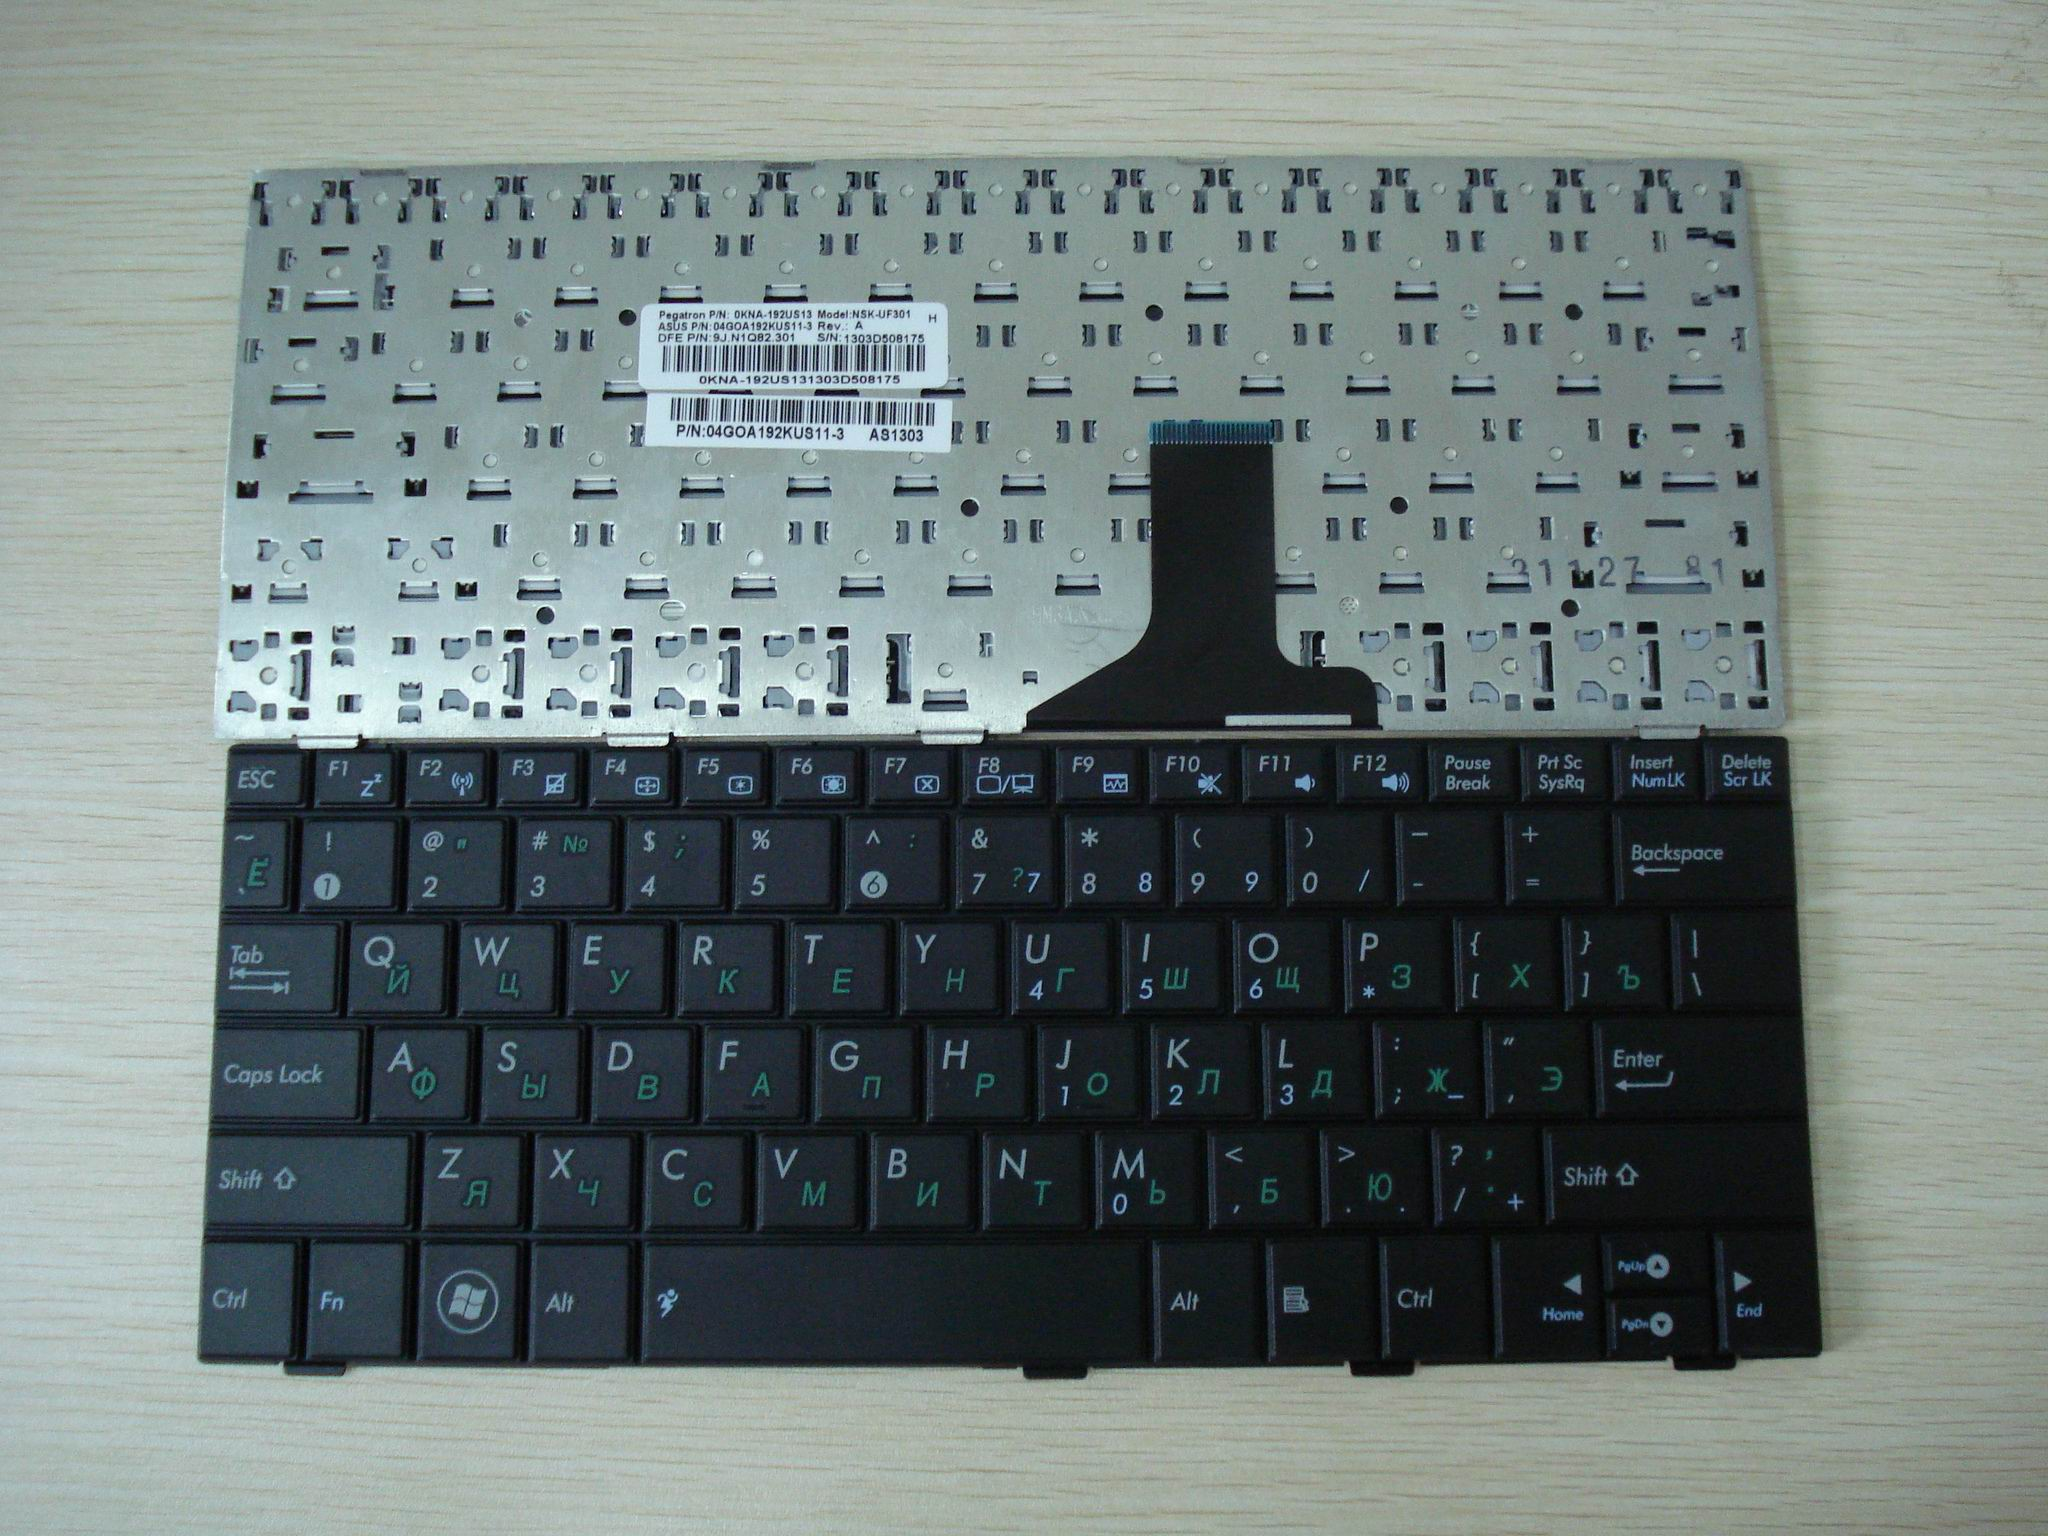 New keyboard For ASUS EPC 1005HA 1008  1001 1004 notebook keyboard repairing replaceement keyboard RU layout